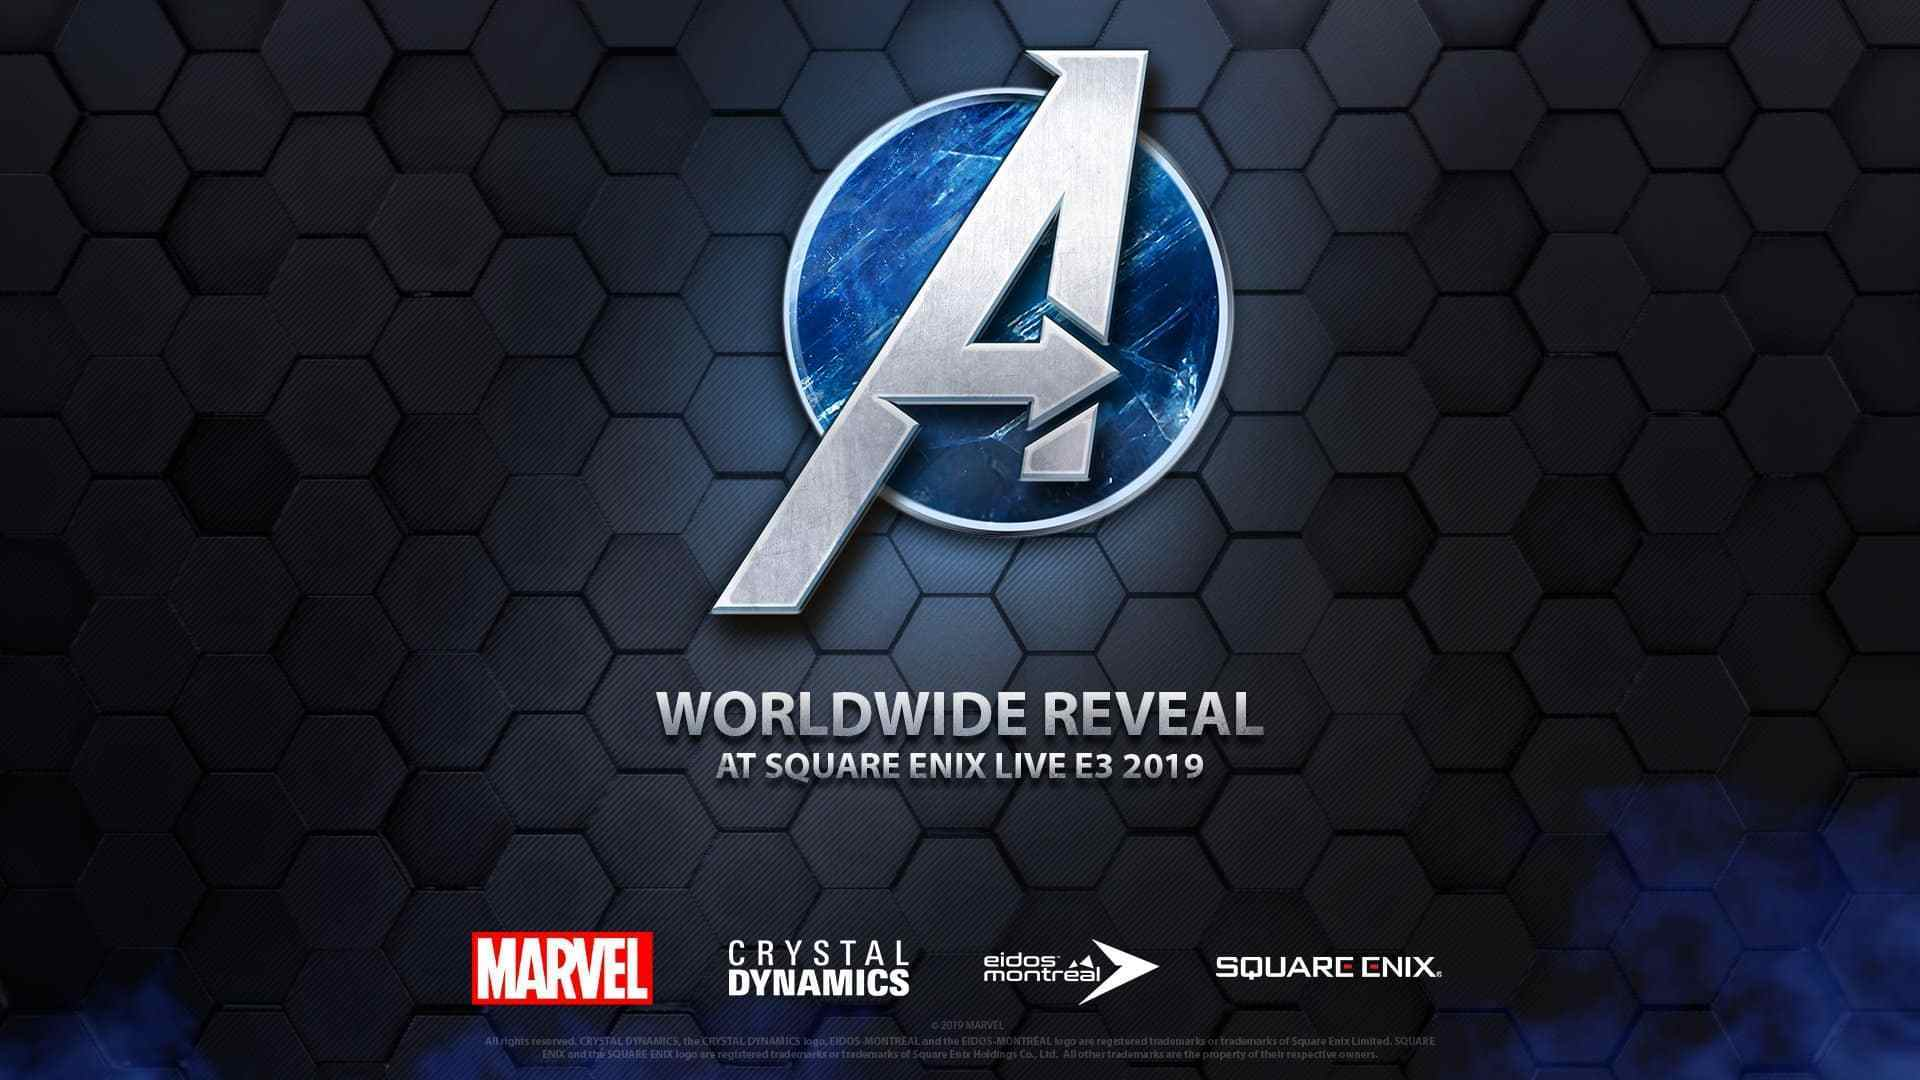 Marvel's Avengers will release on May 15, 2020 for Xbox One, PlayStation 4, PC, and Google Stadia.